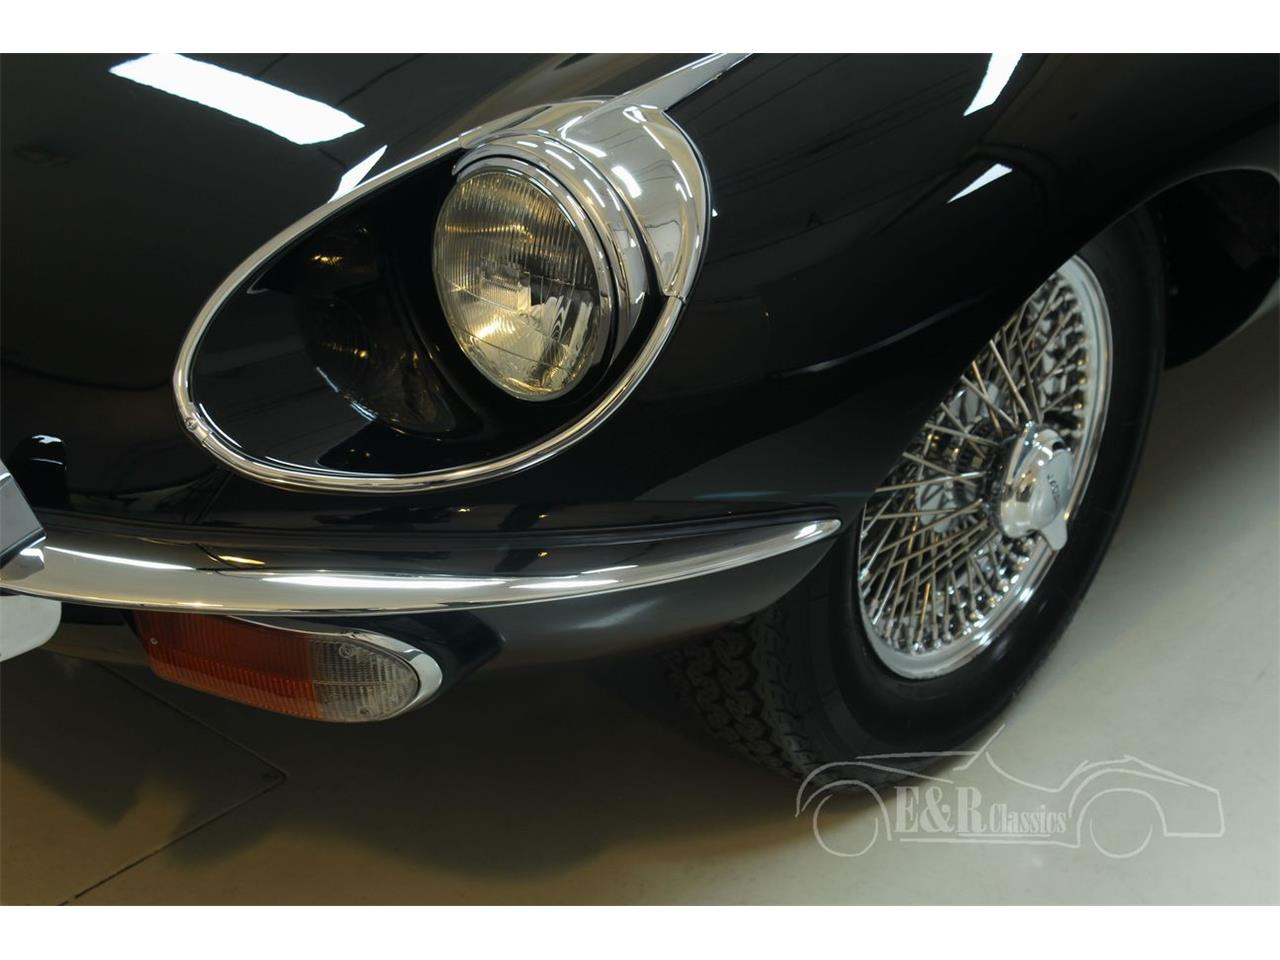 Large Picture of Classic 1969 E-Type located in noord brabant - $145,500.00 Offered by E & R Classics - QOU8